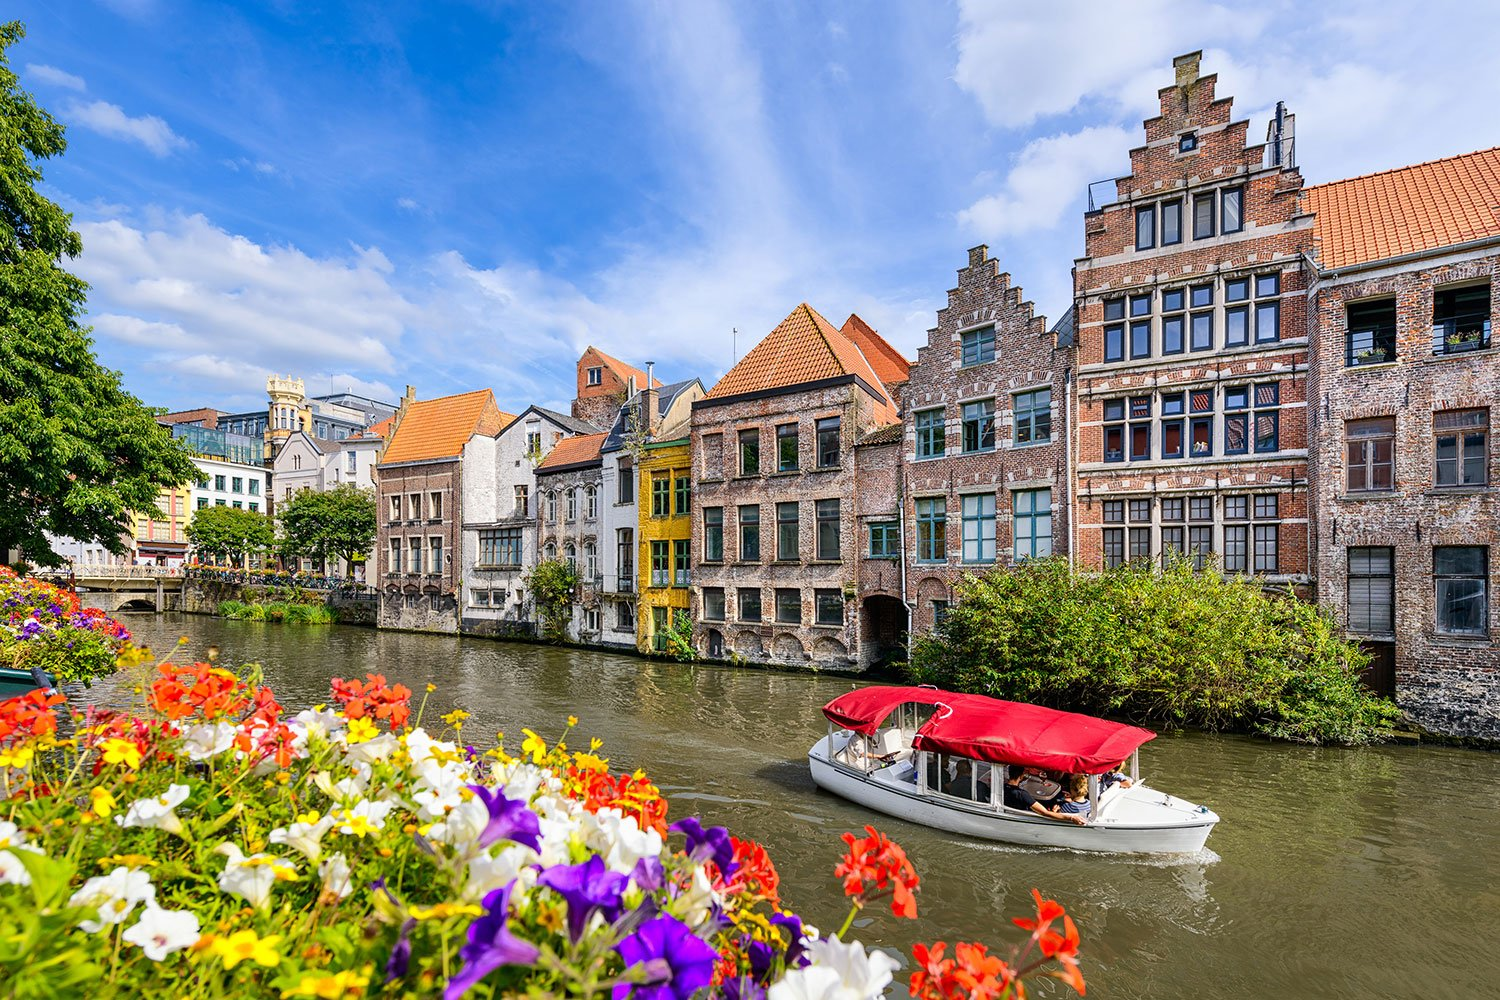 White and red boat on a canal lined by multi-level buildings and colorful flowers in Belgium